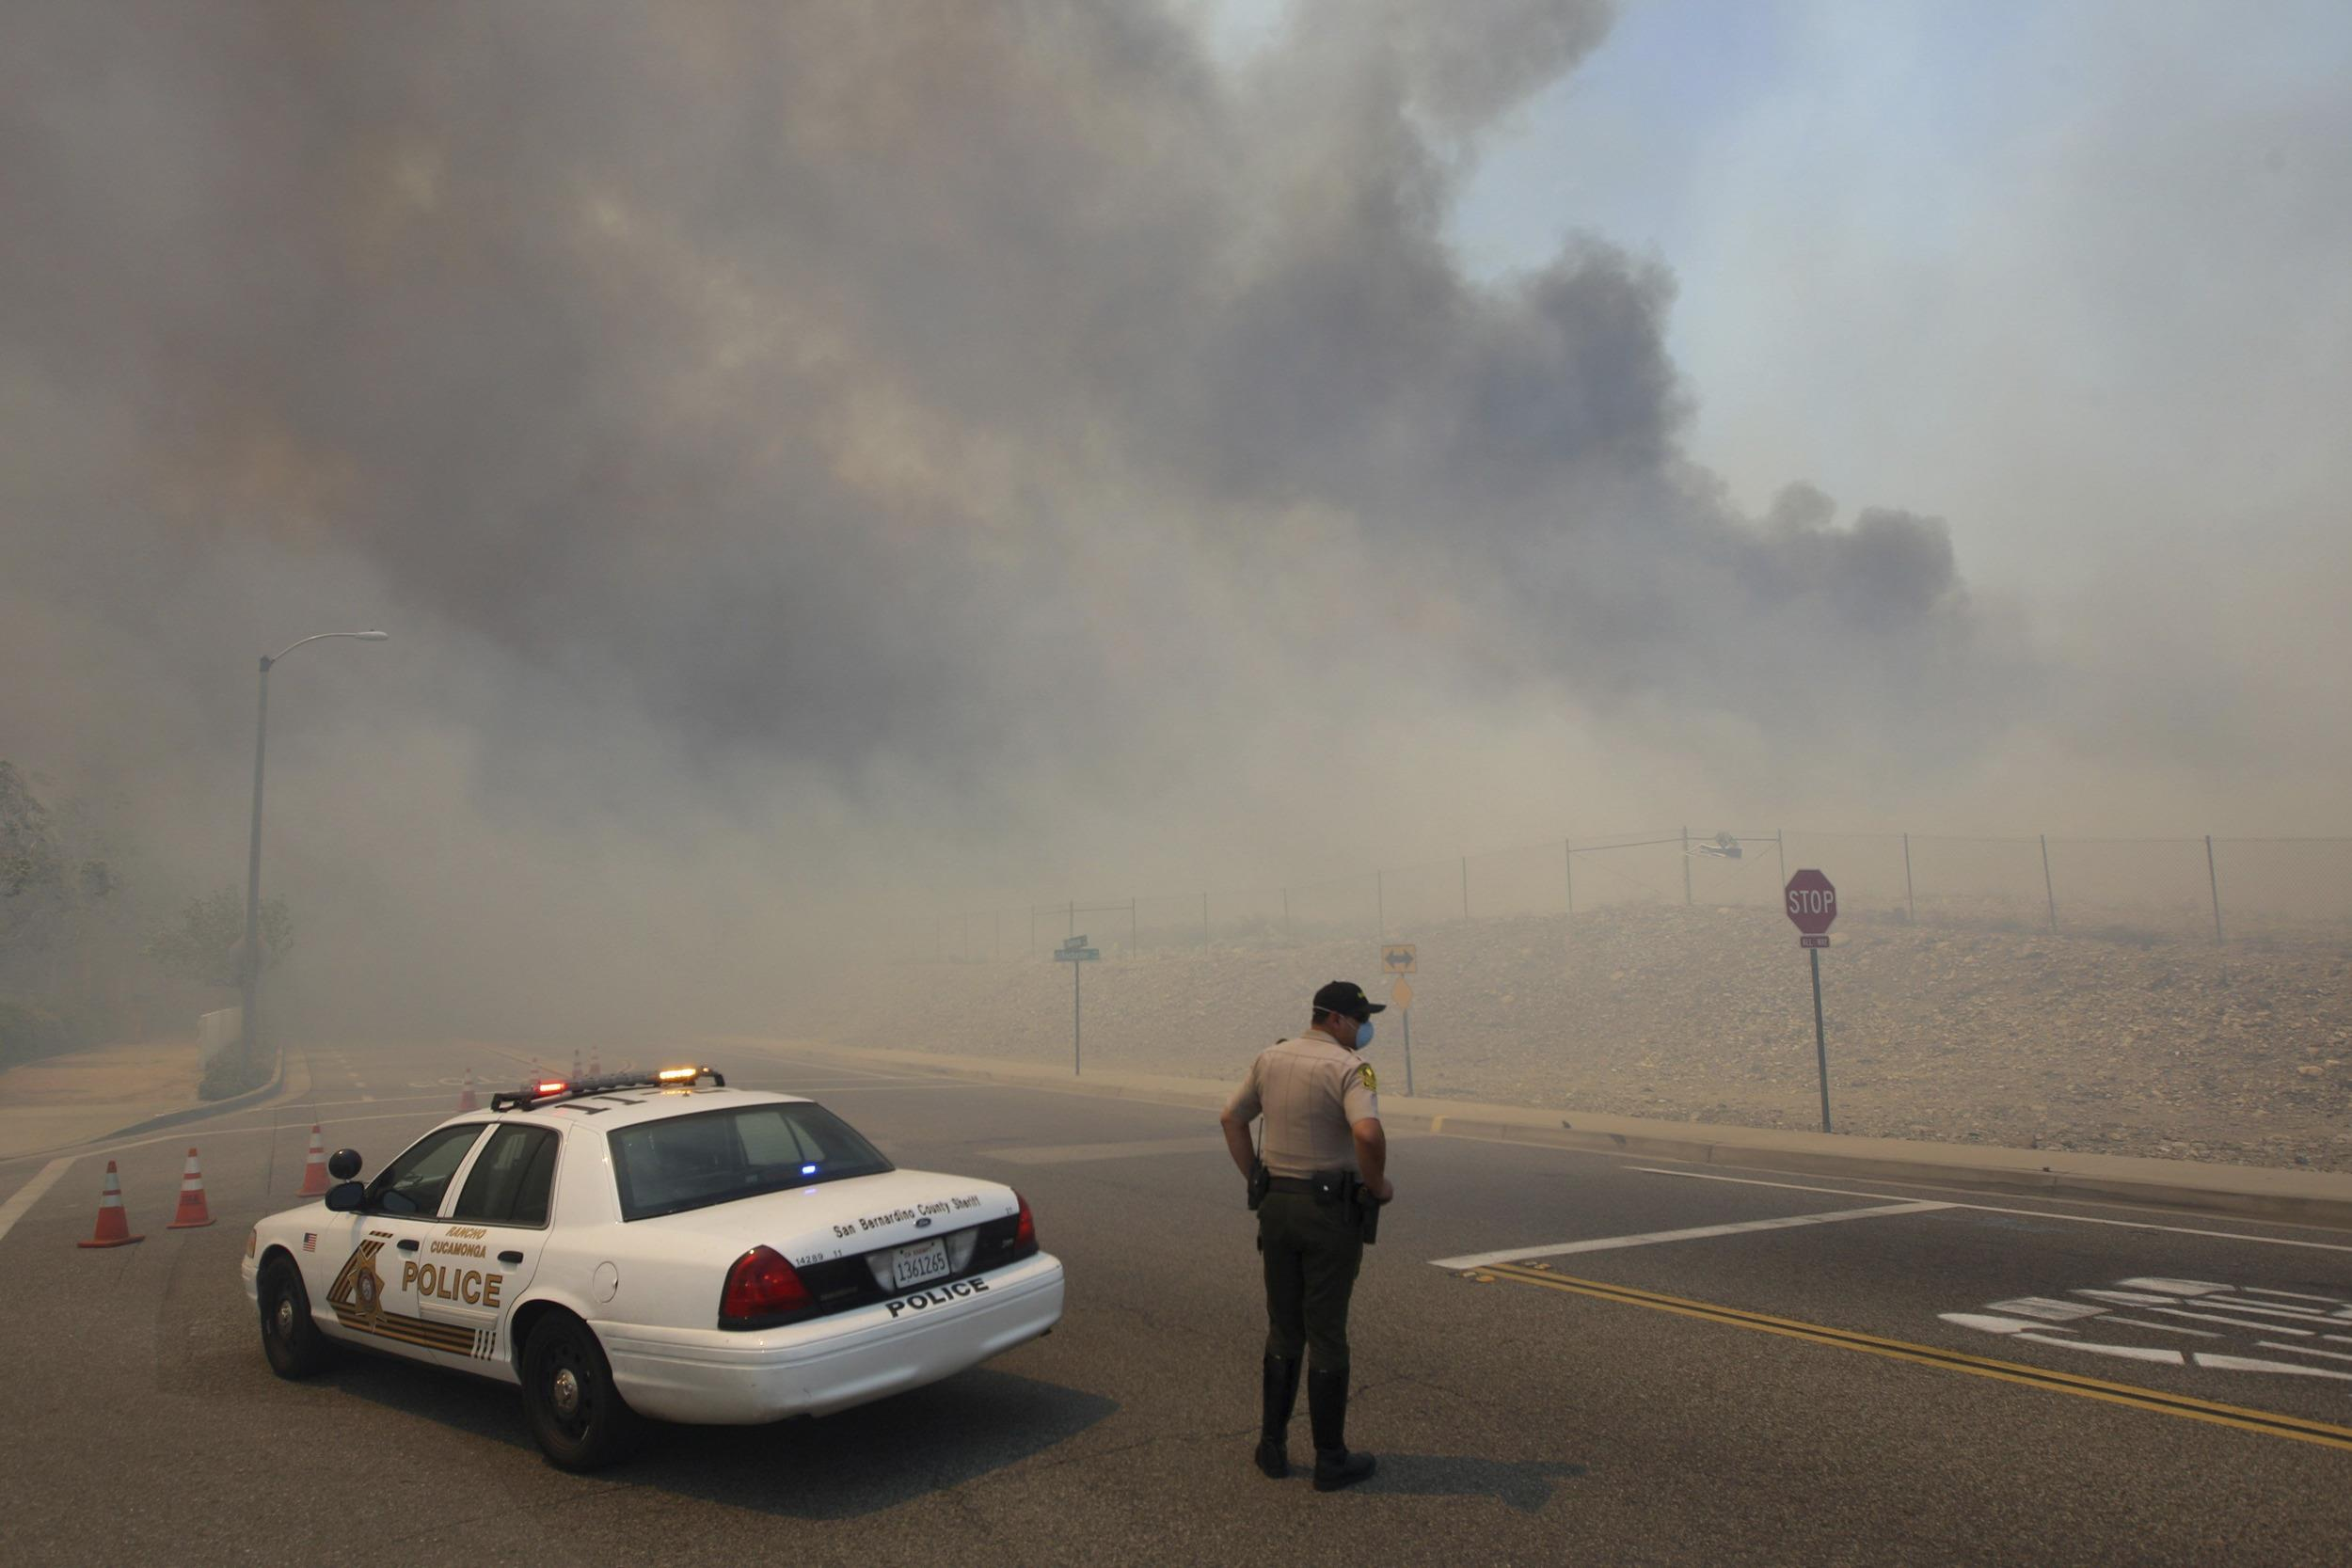 Image: A police officer mans a roadblock as smoke billows from a wildfire driven by fierce Santa Ana winds in Rancho Cucamonga, California